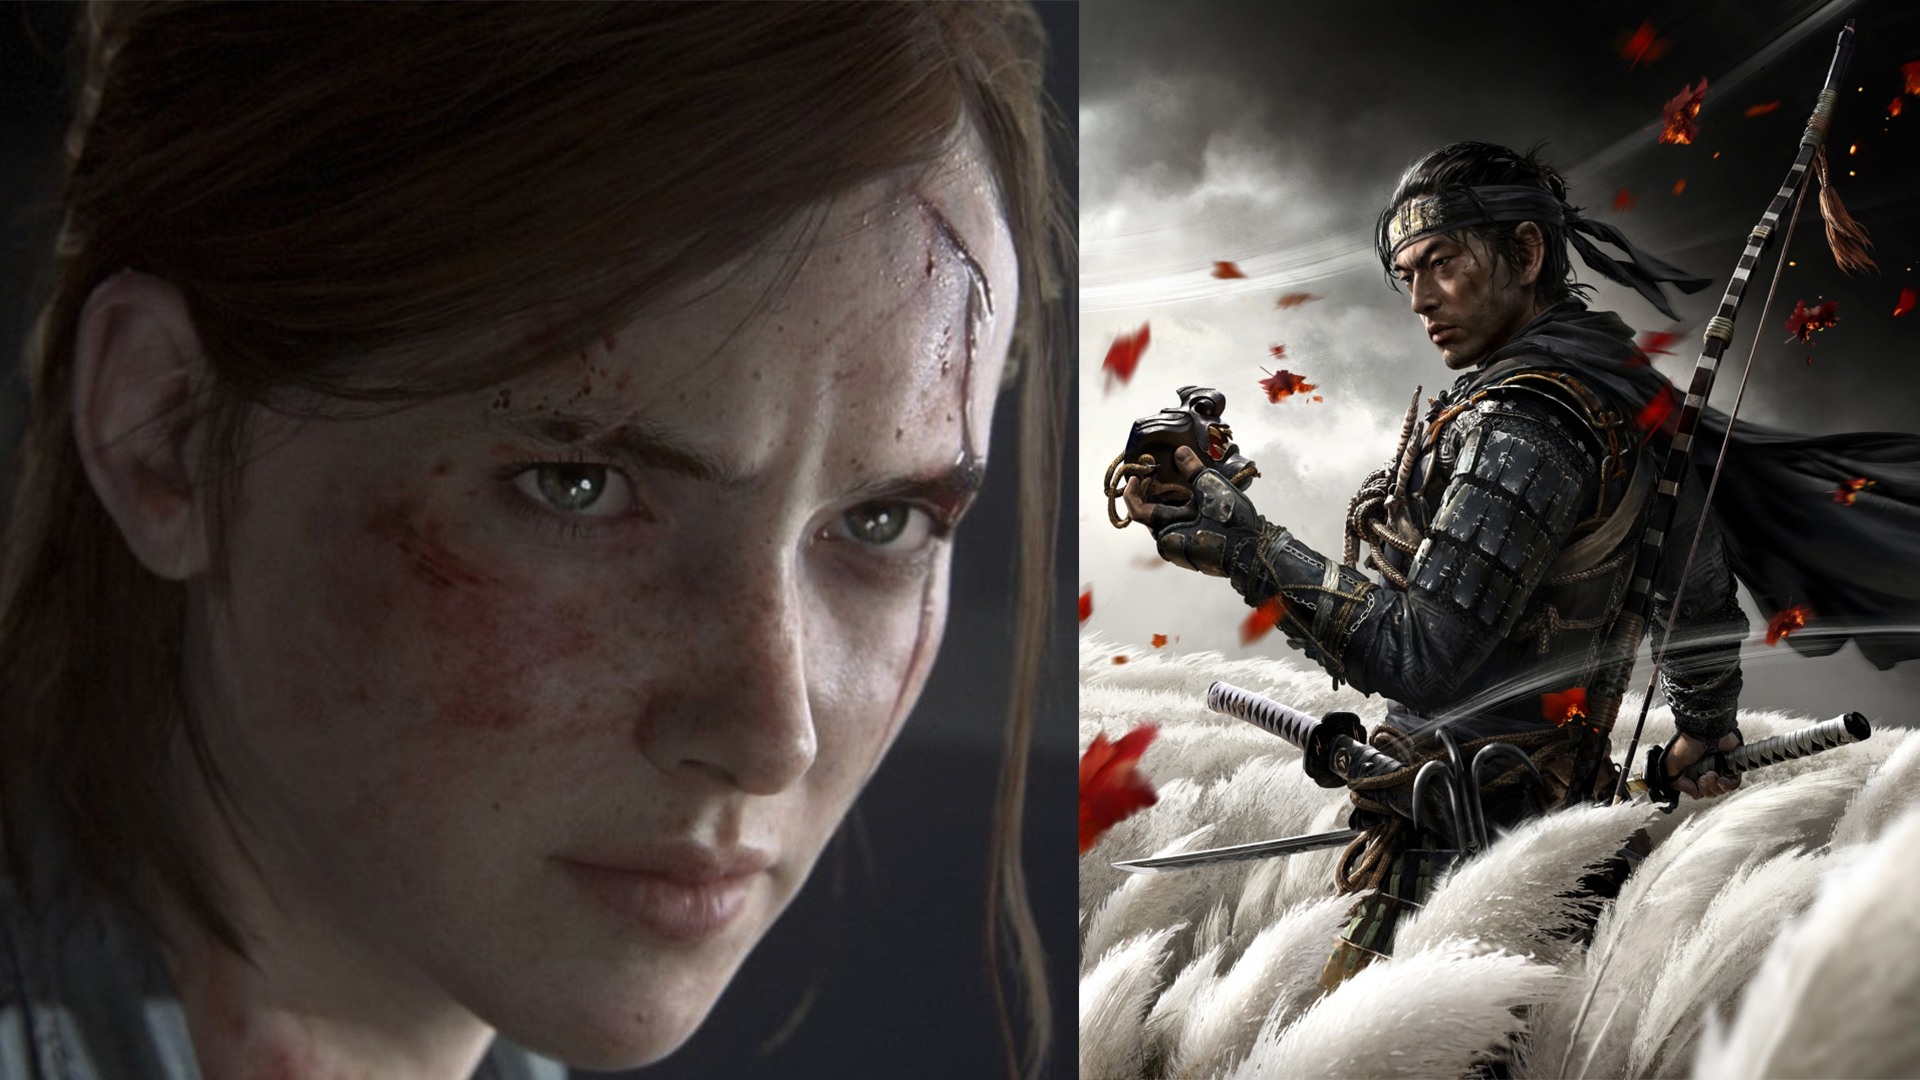 The Last of Us 2 and Ghost of Tsushima